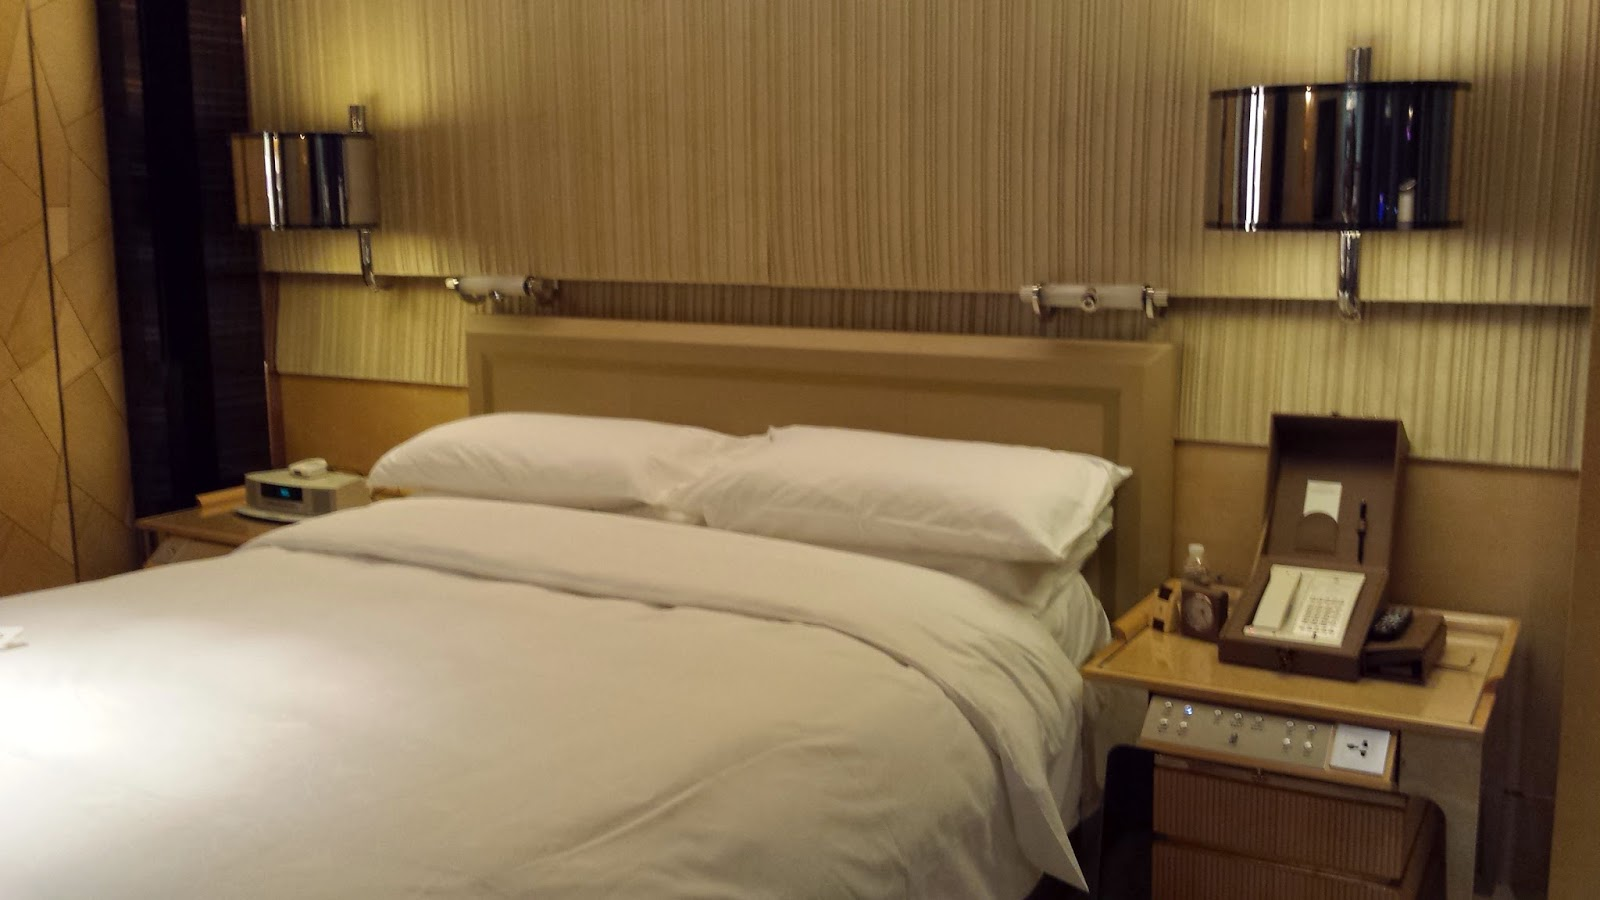 Hotel Rooms Abroad Uncomfortable